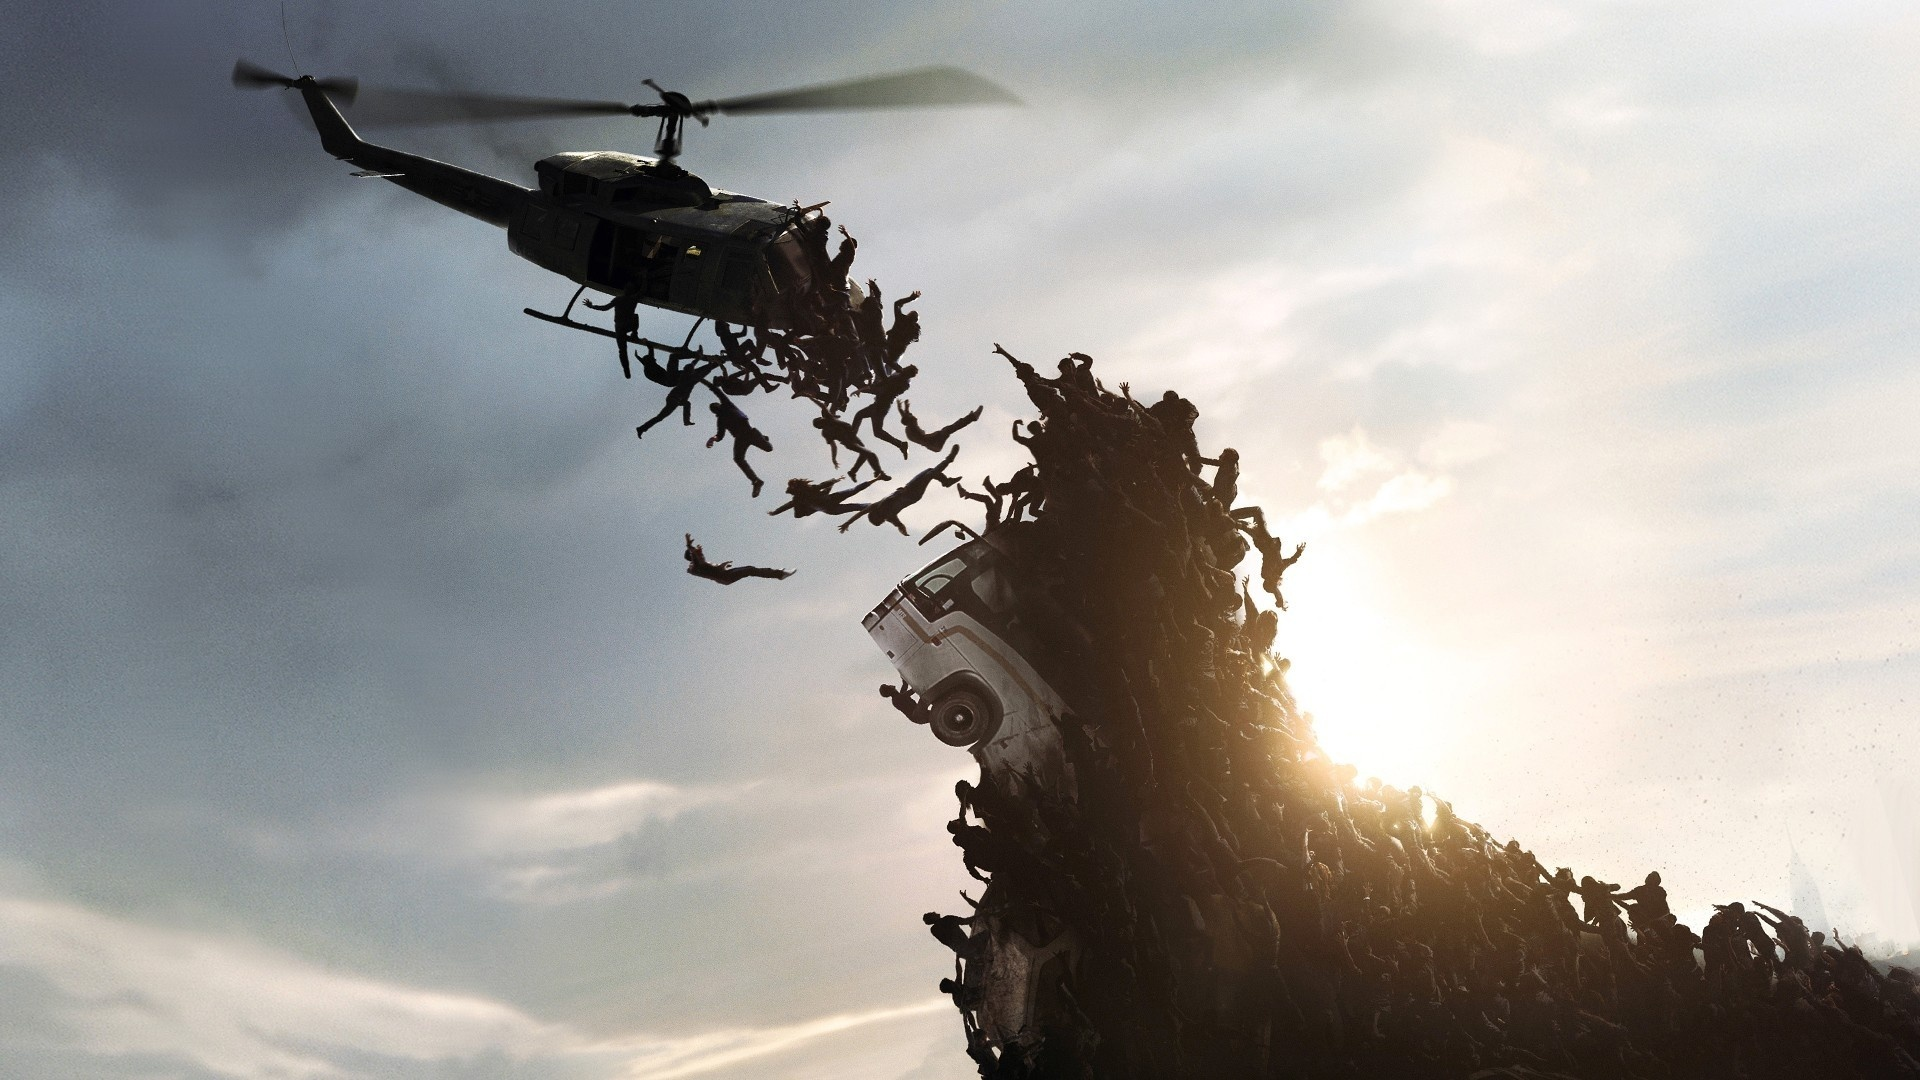 Zombies Helicopter Wallpaper 1920x1080 11216